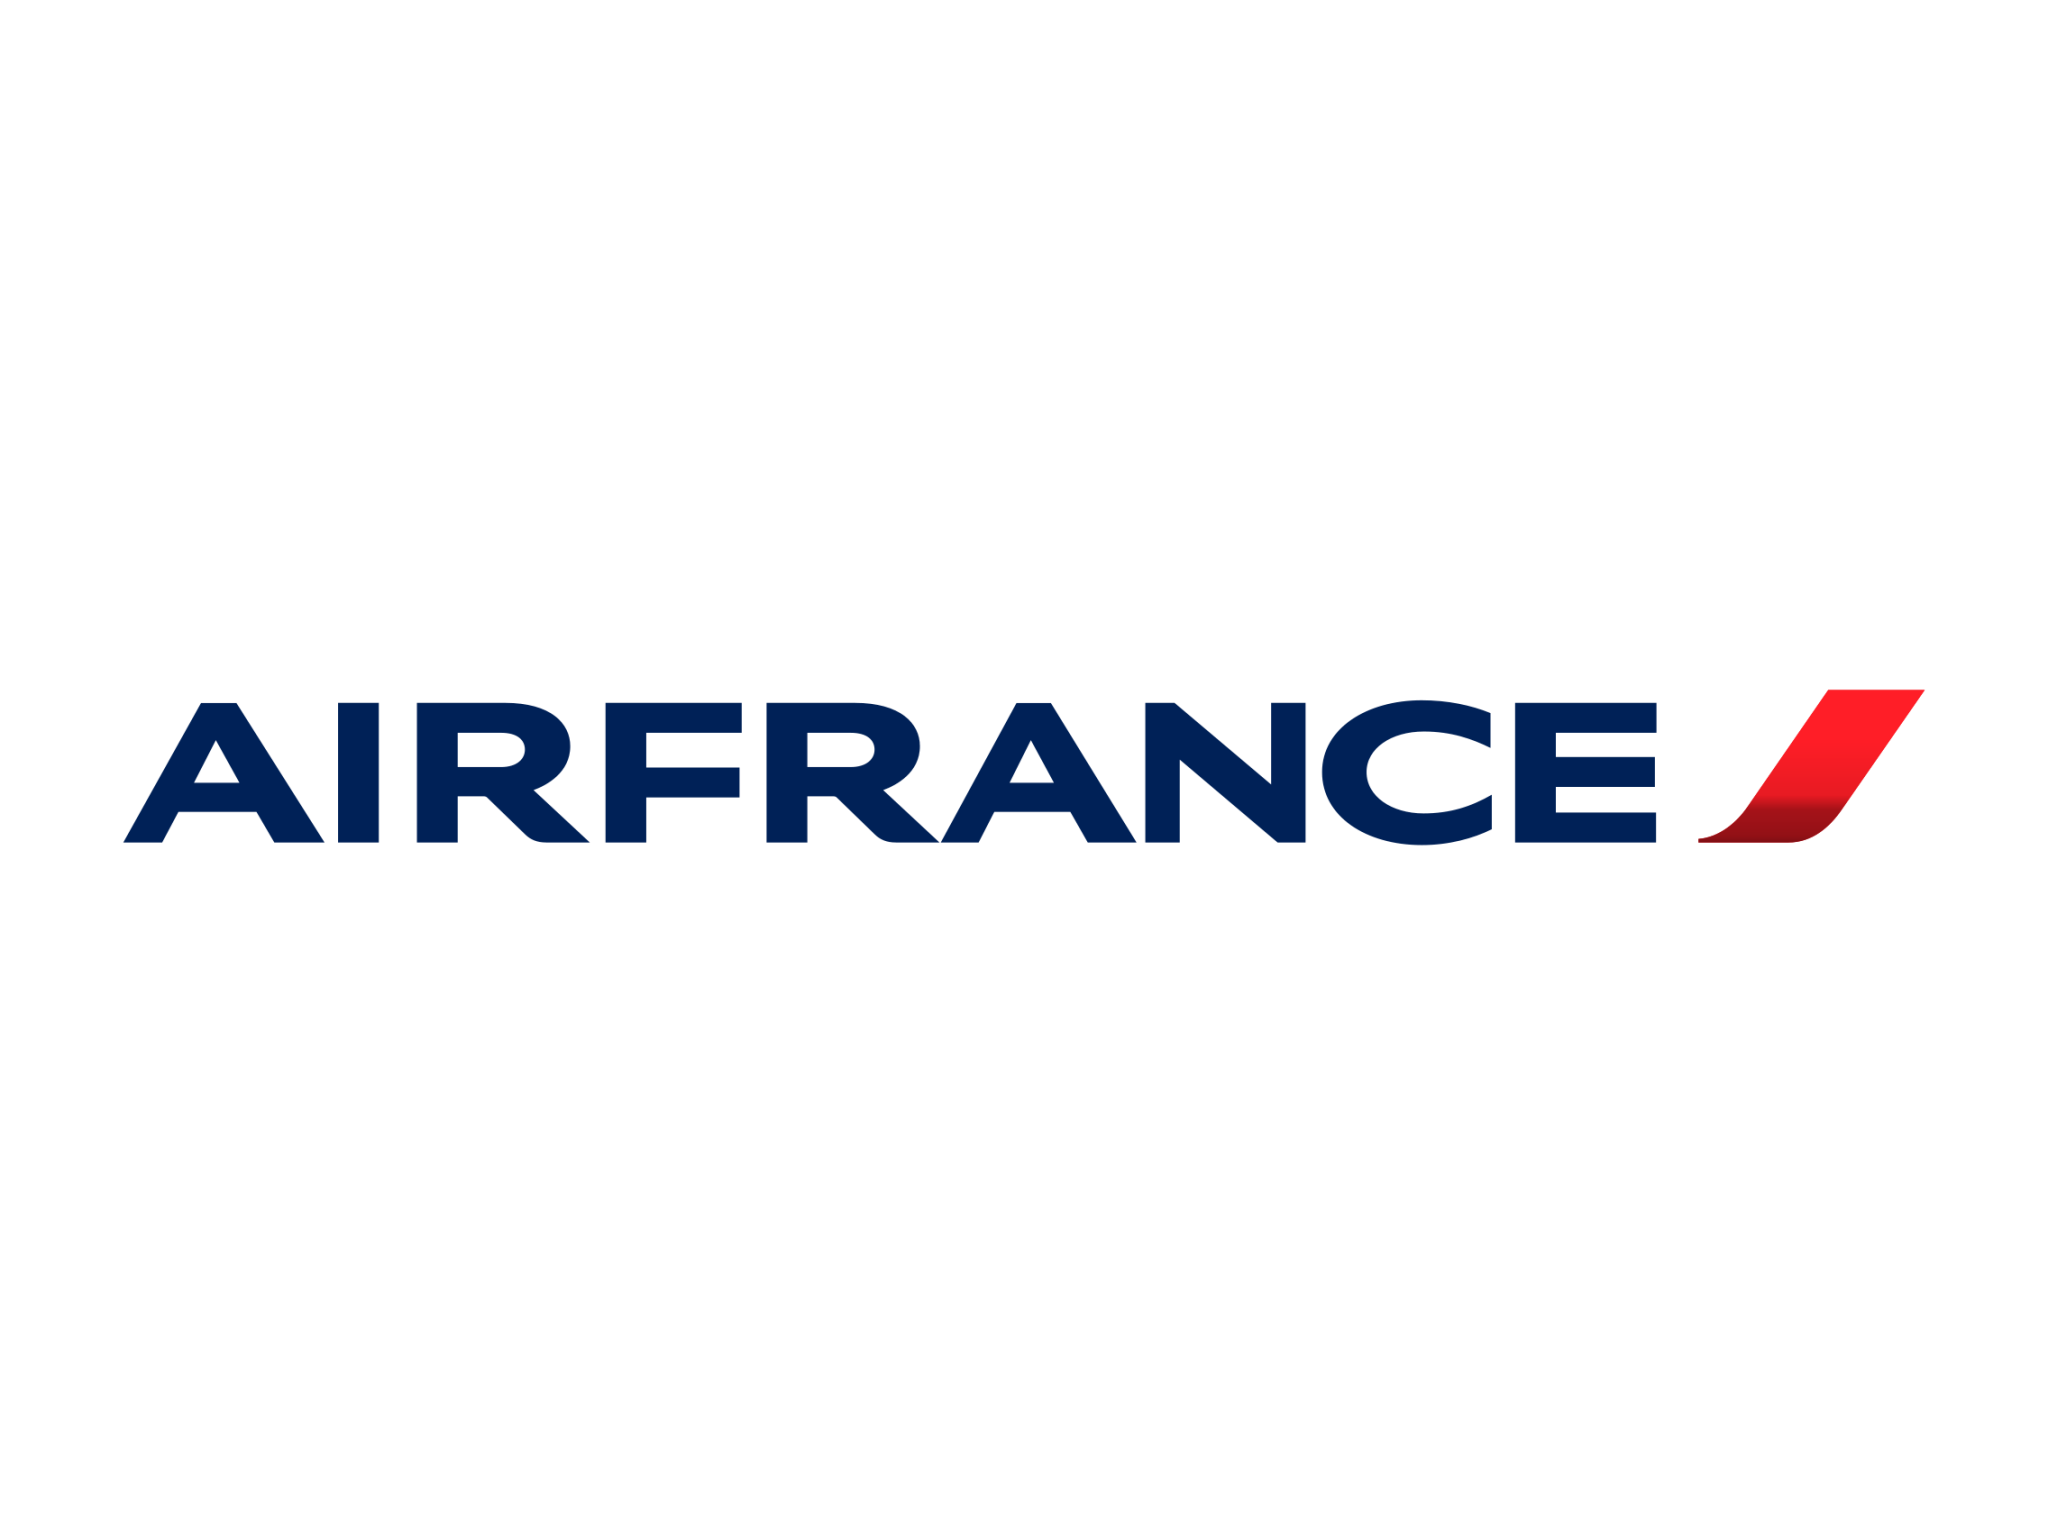 Air France Customer Service Phone Number